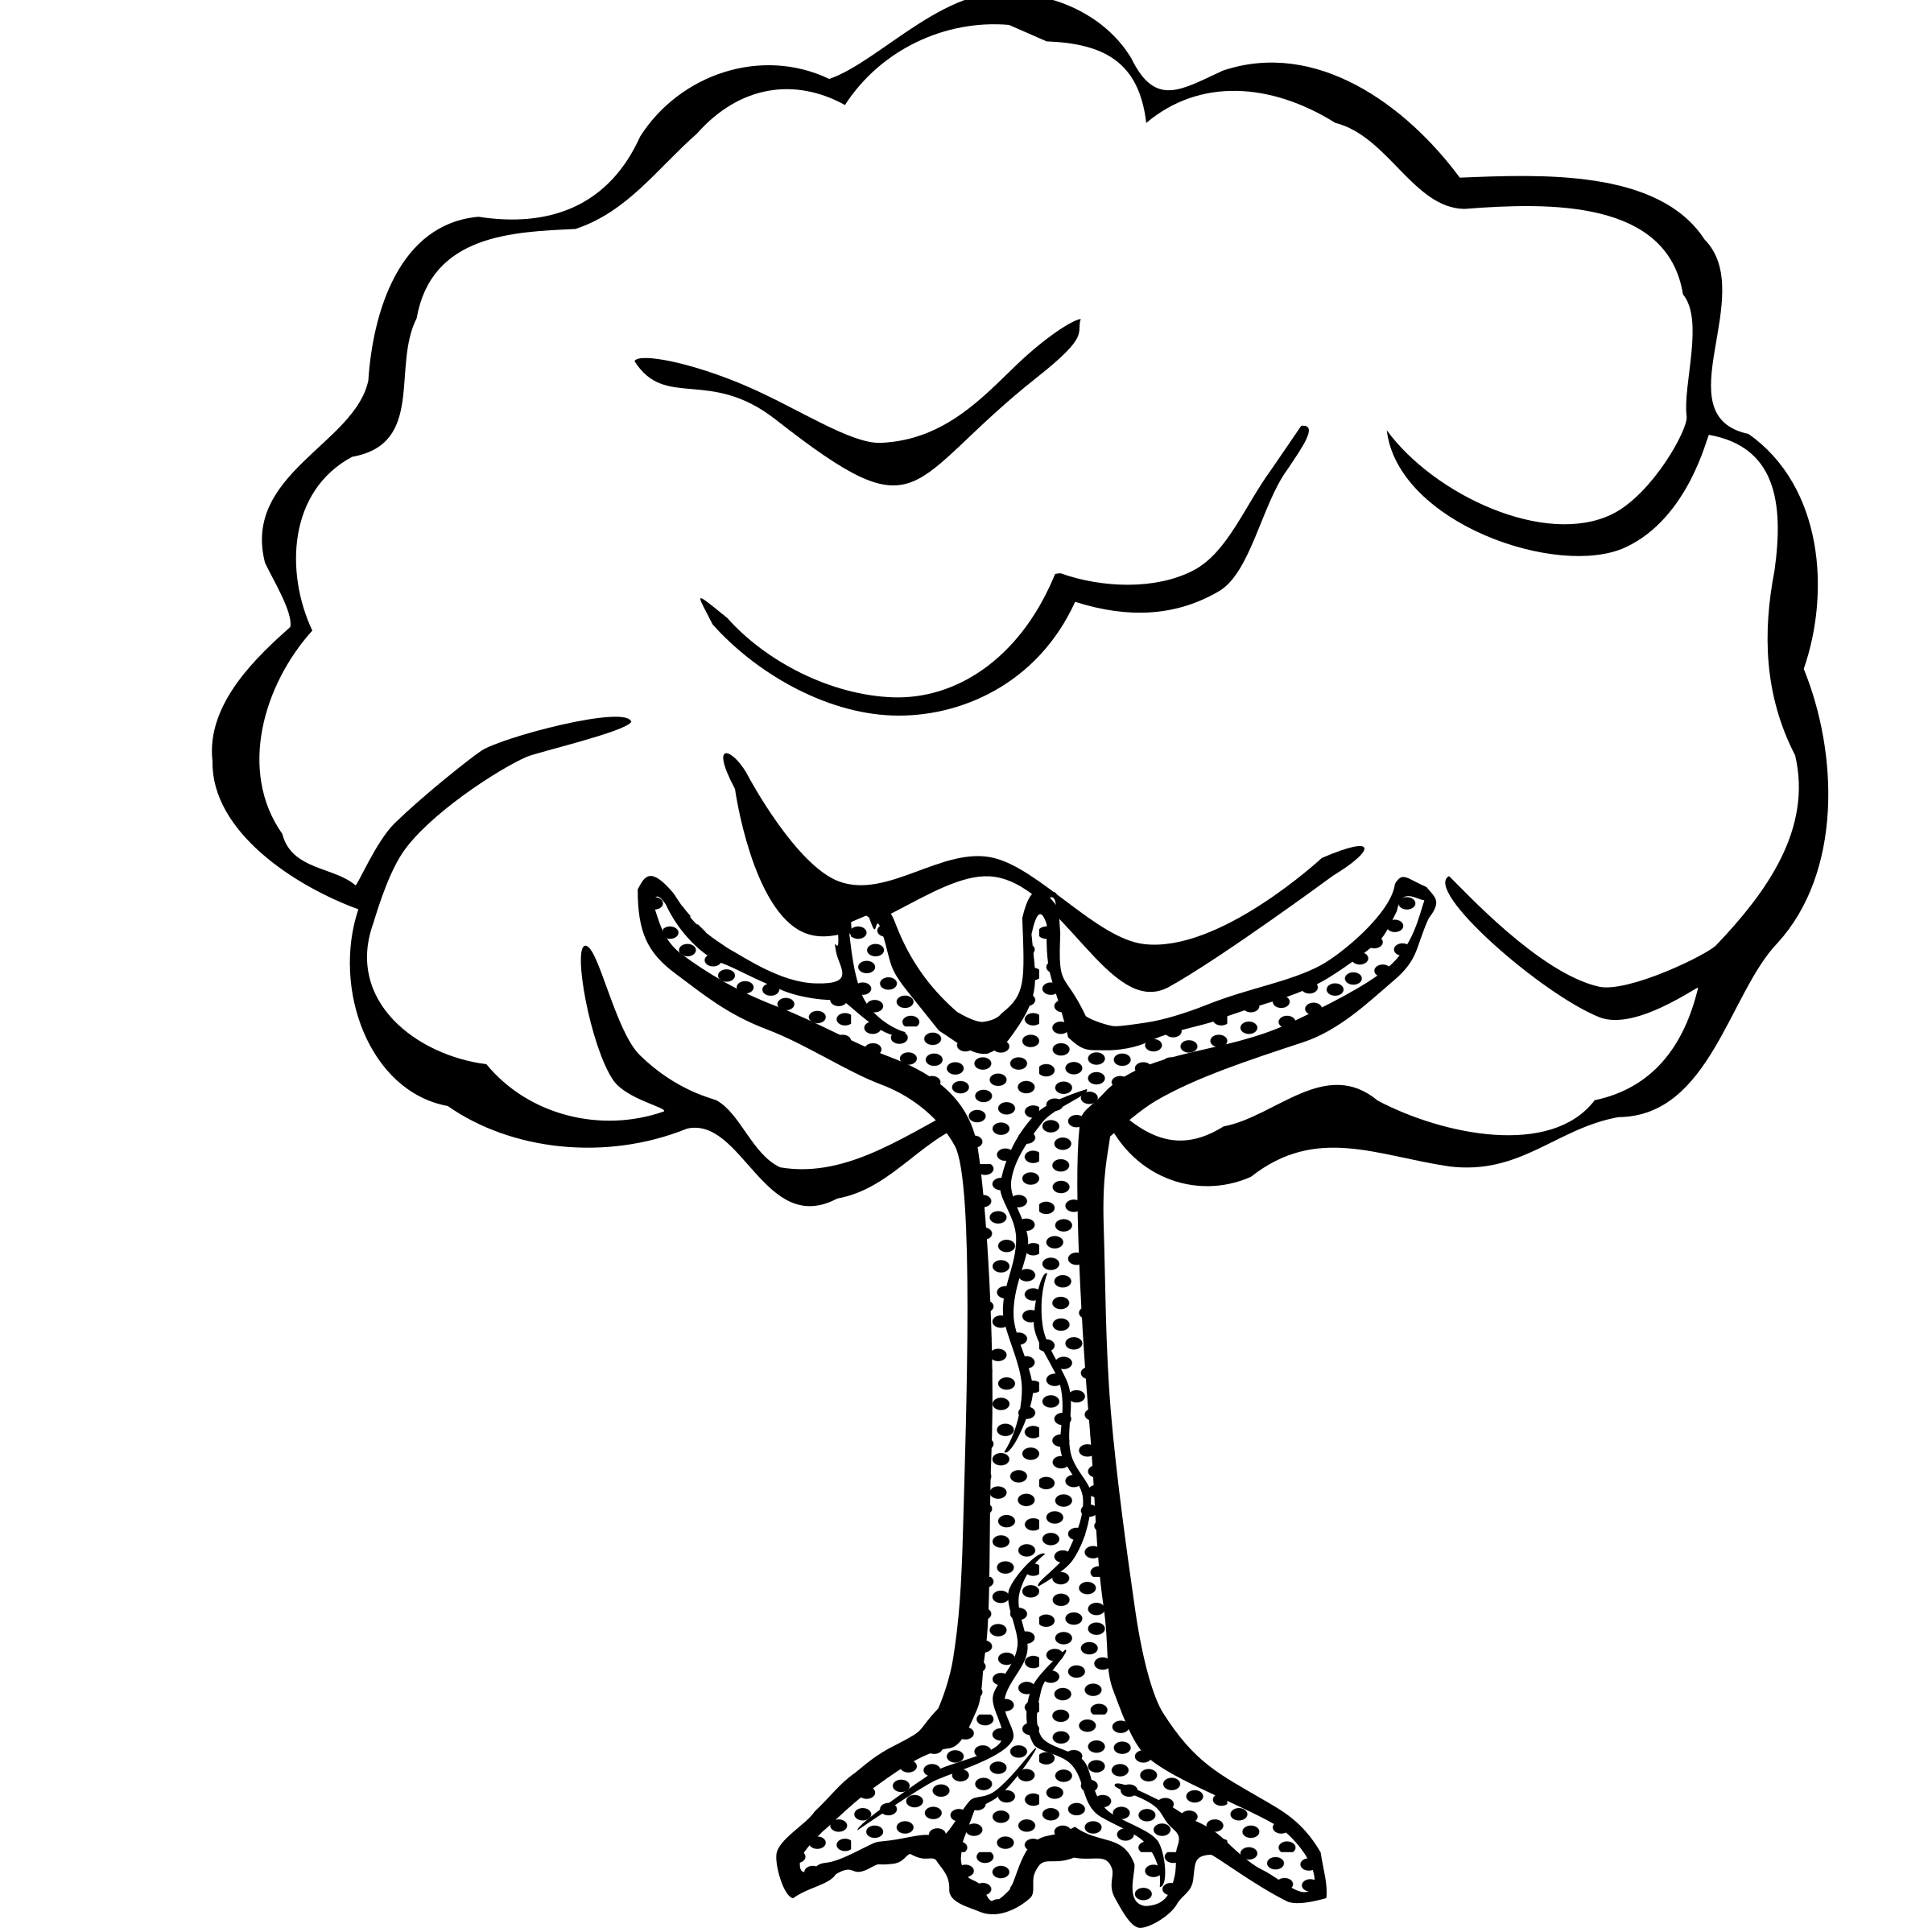 clipart black and white download Clipart trees black and white. Big tree silhouette at